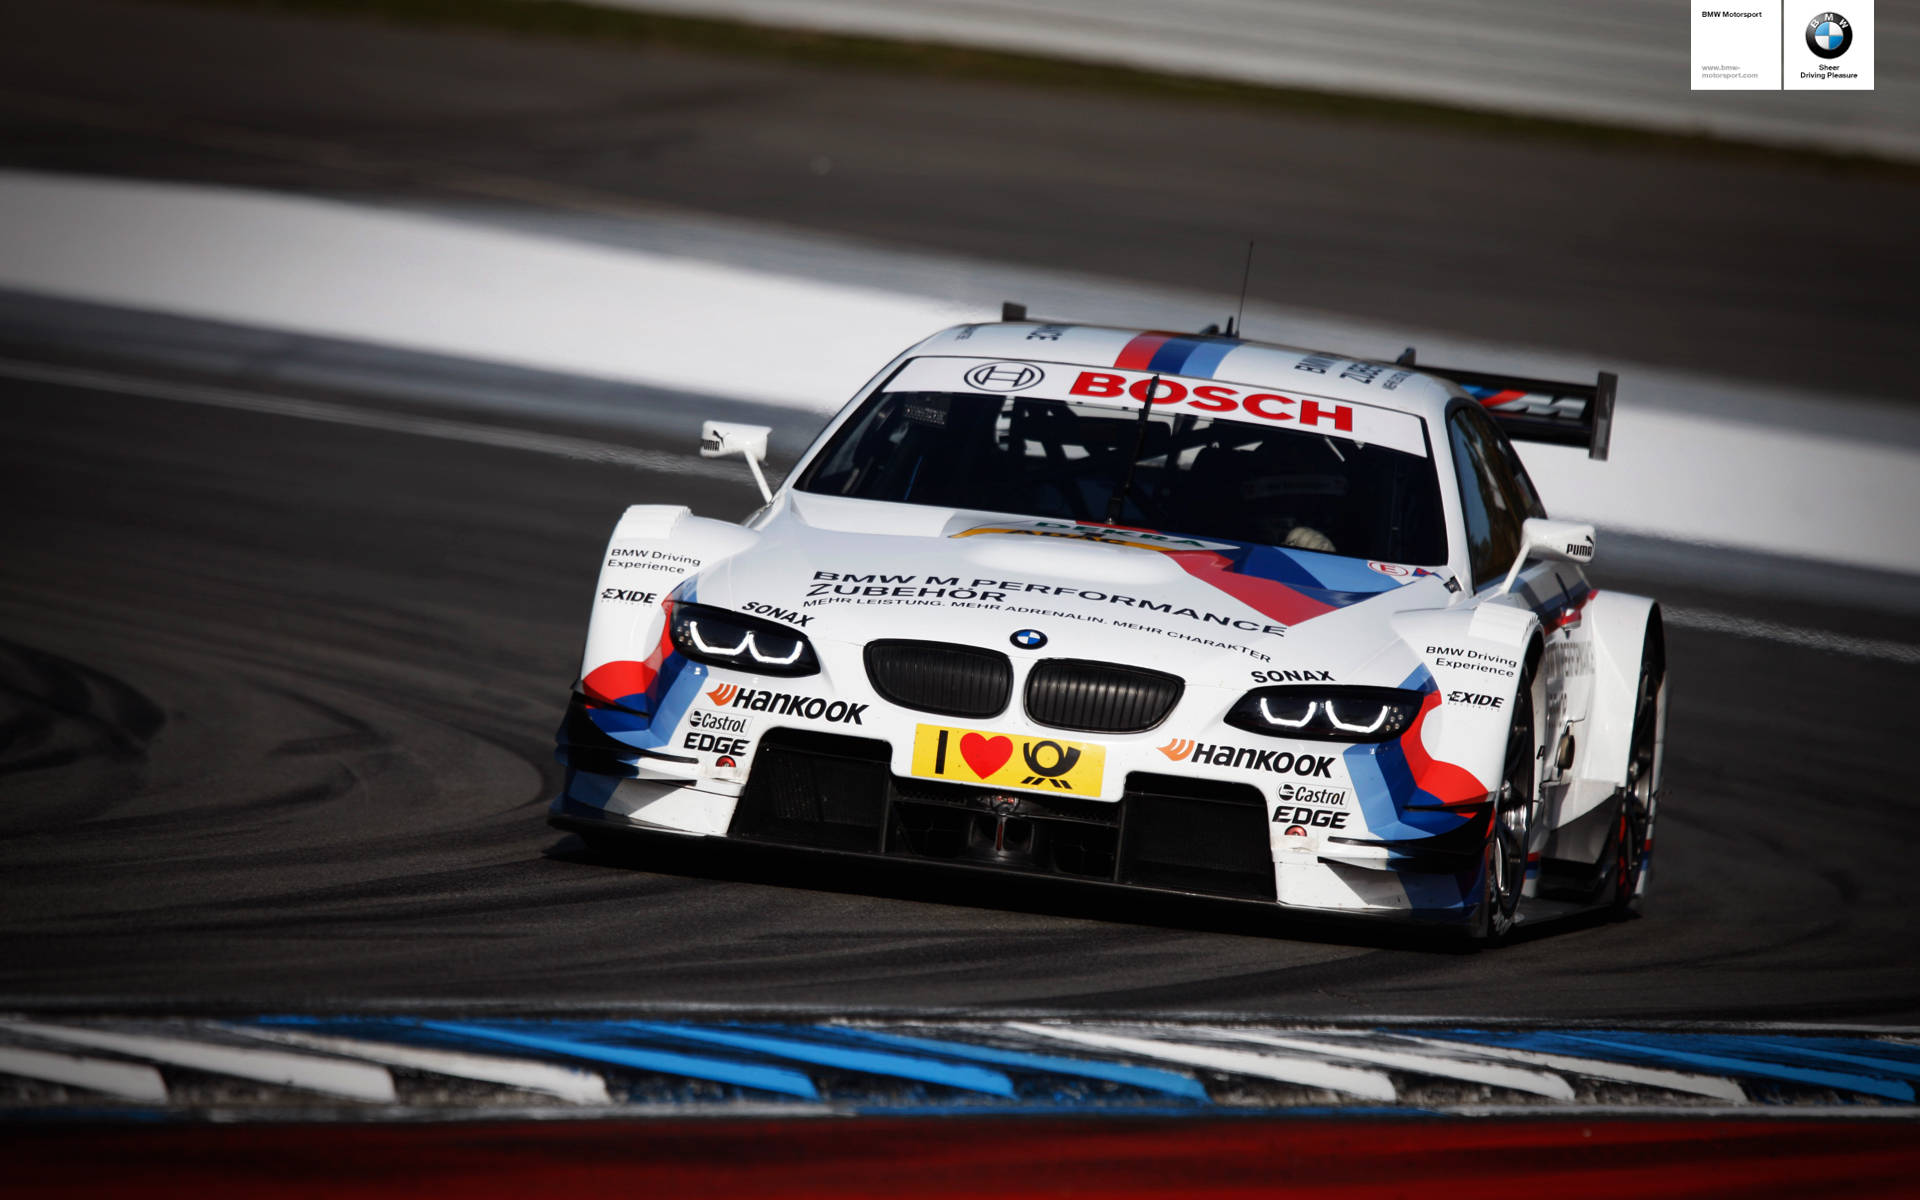 Coolest Car In The World Wallpaper Bmw Welt Turns Into Dtm World In April Autoevolution